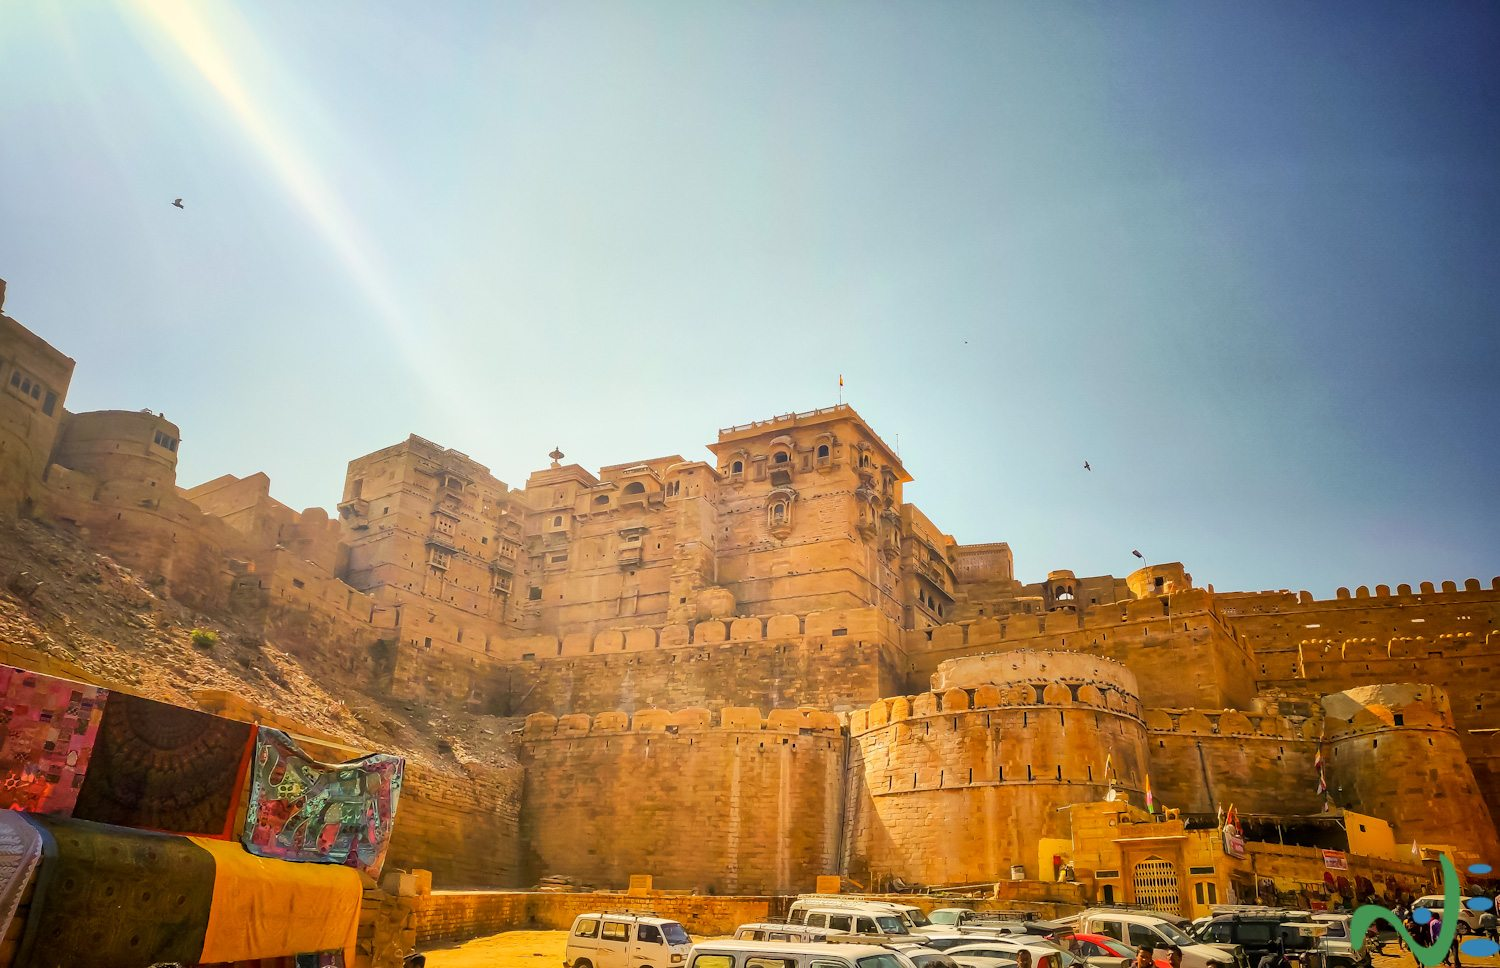 Jaisalmer Fort is one of the most visited places in Jaisalmer, Rajasthan